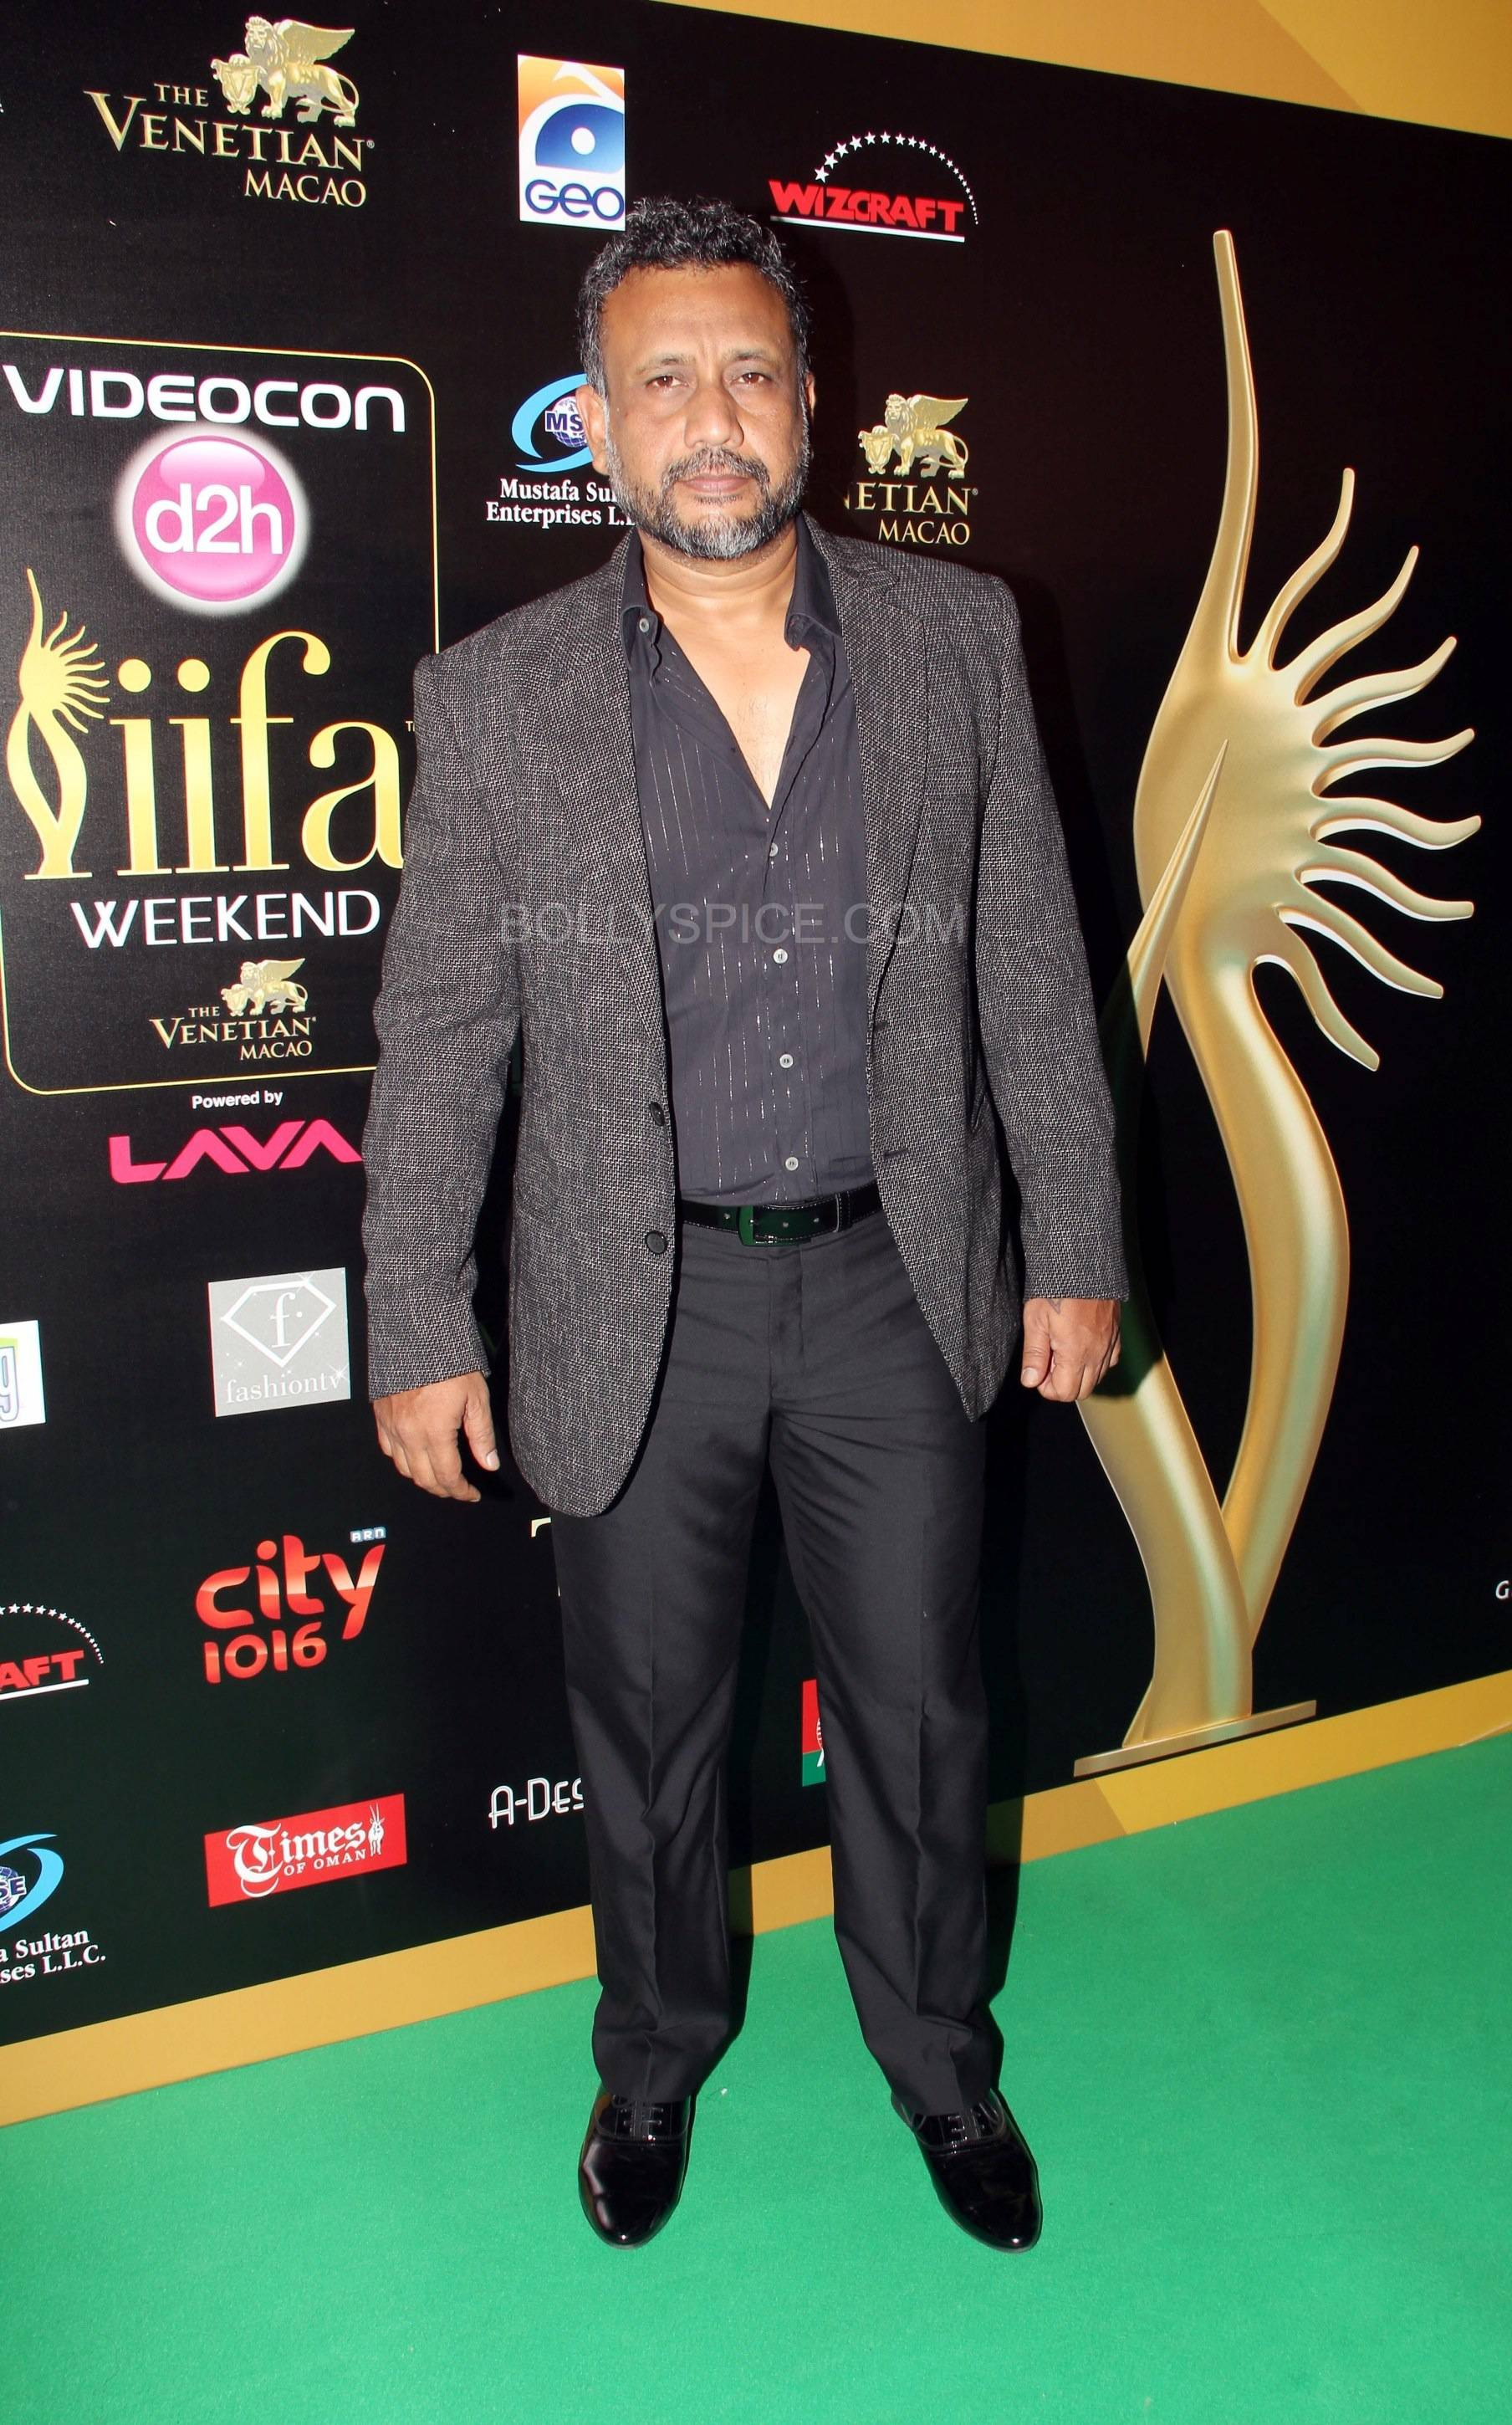 Anubhav Sinha at IIFA Rocks Green carpet More from IIFA Rocks including winners and more Green Carpet pics! Pics added!